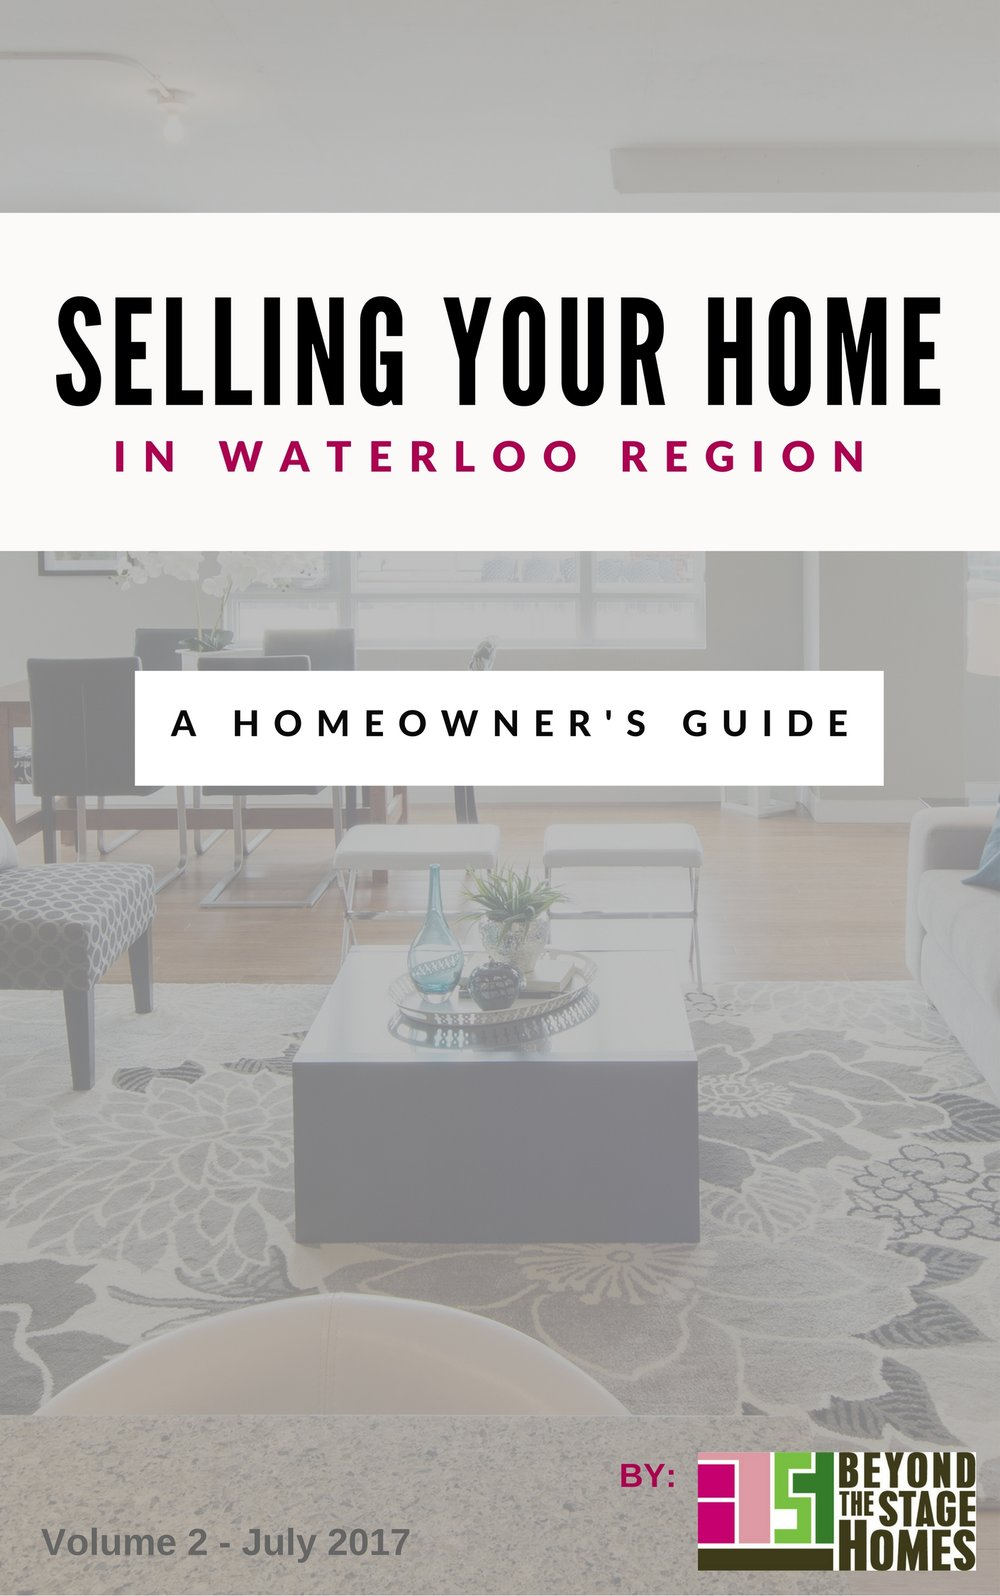 Selling Your Home in Waterloo Region